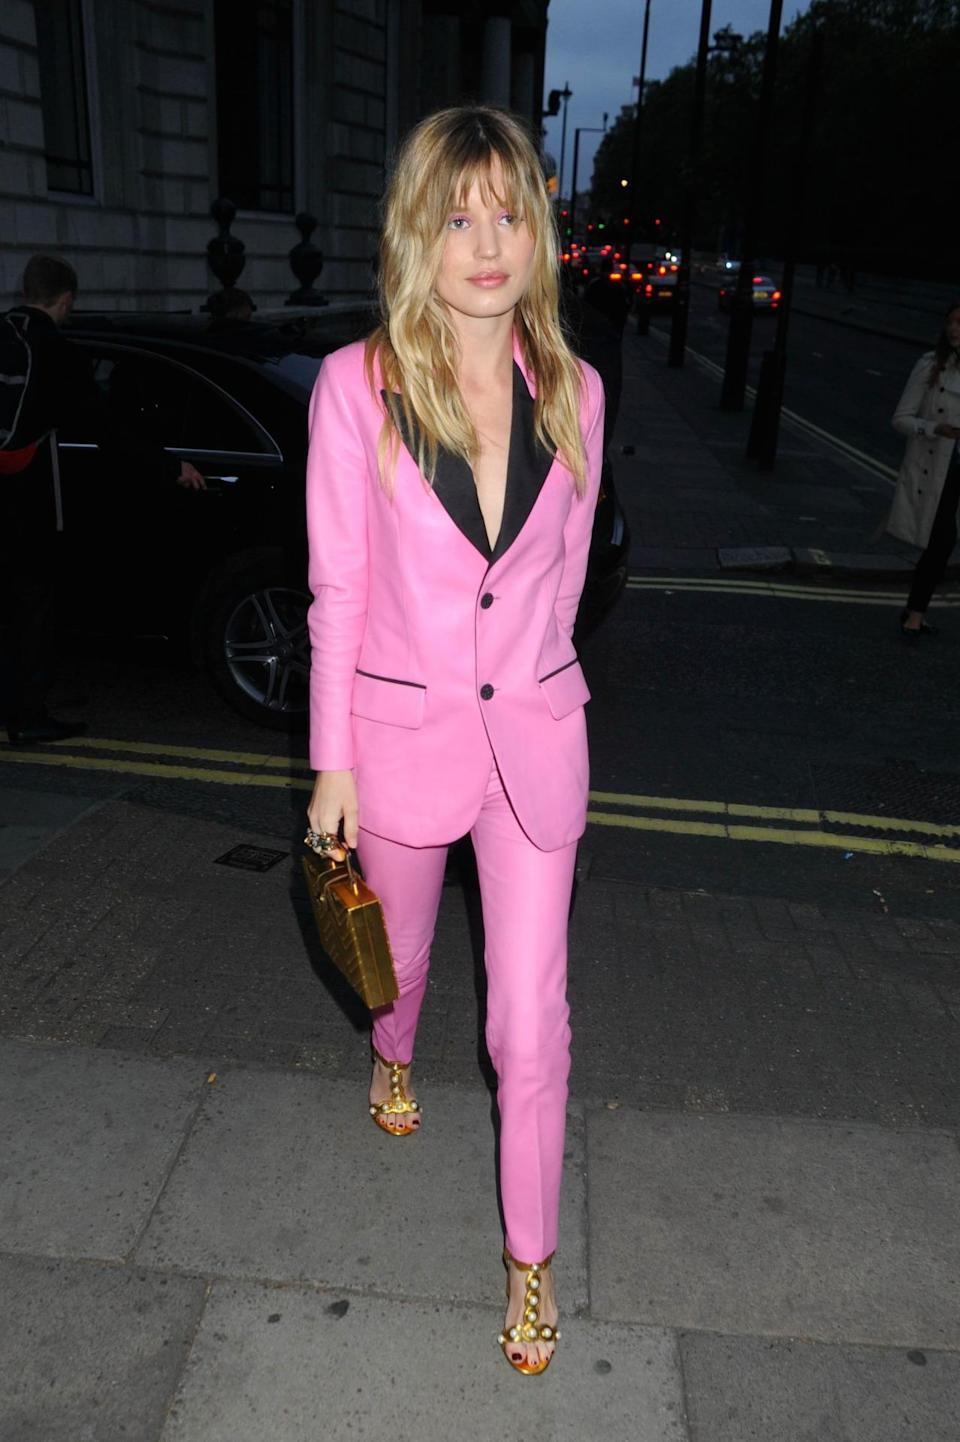 <p>Georgia looked super hot in this hot pink suit. The gold accessories finished it off perfectly, Elle Woods would be proud. <i>[Photo: Rex Features]</i></p>